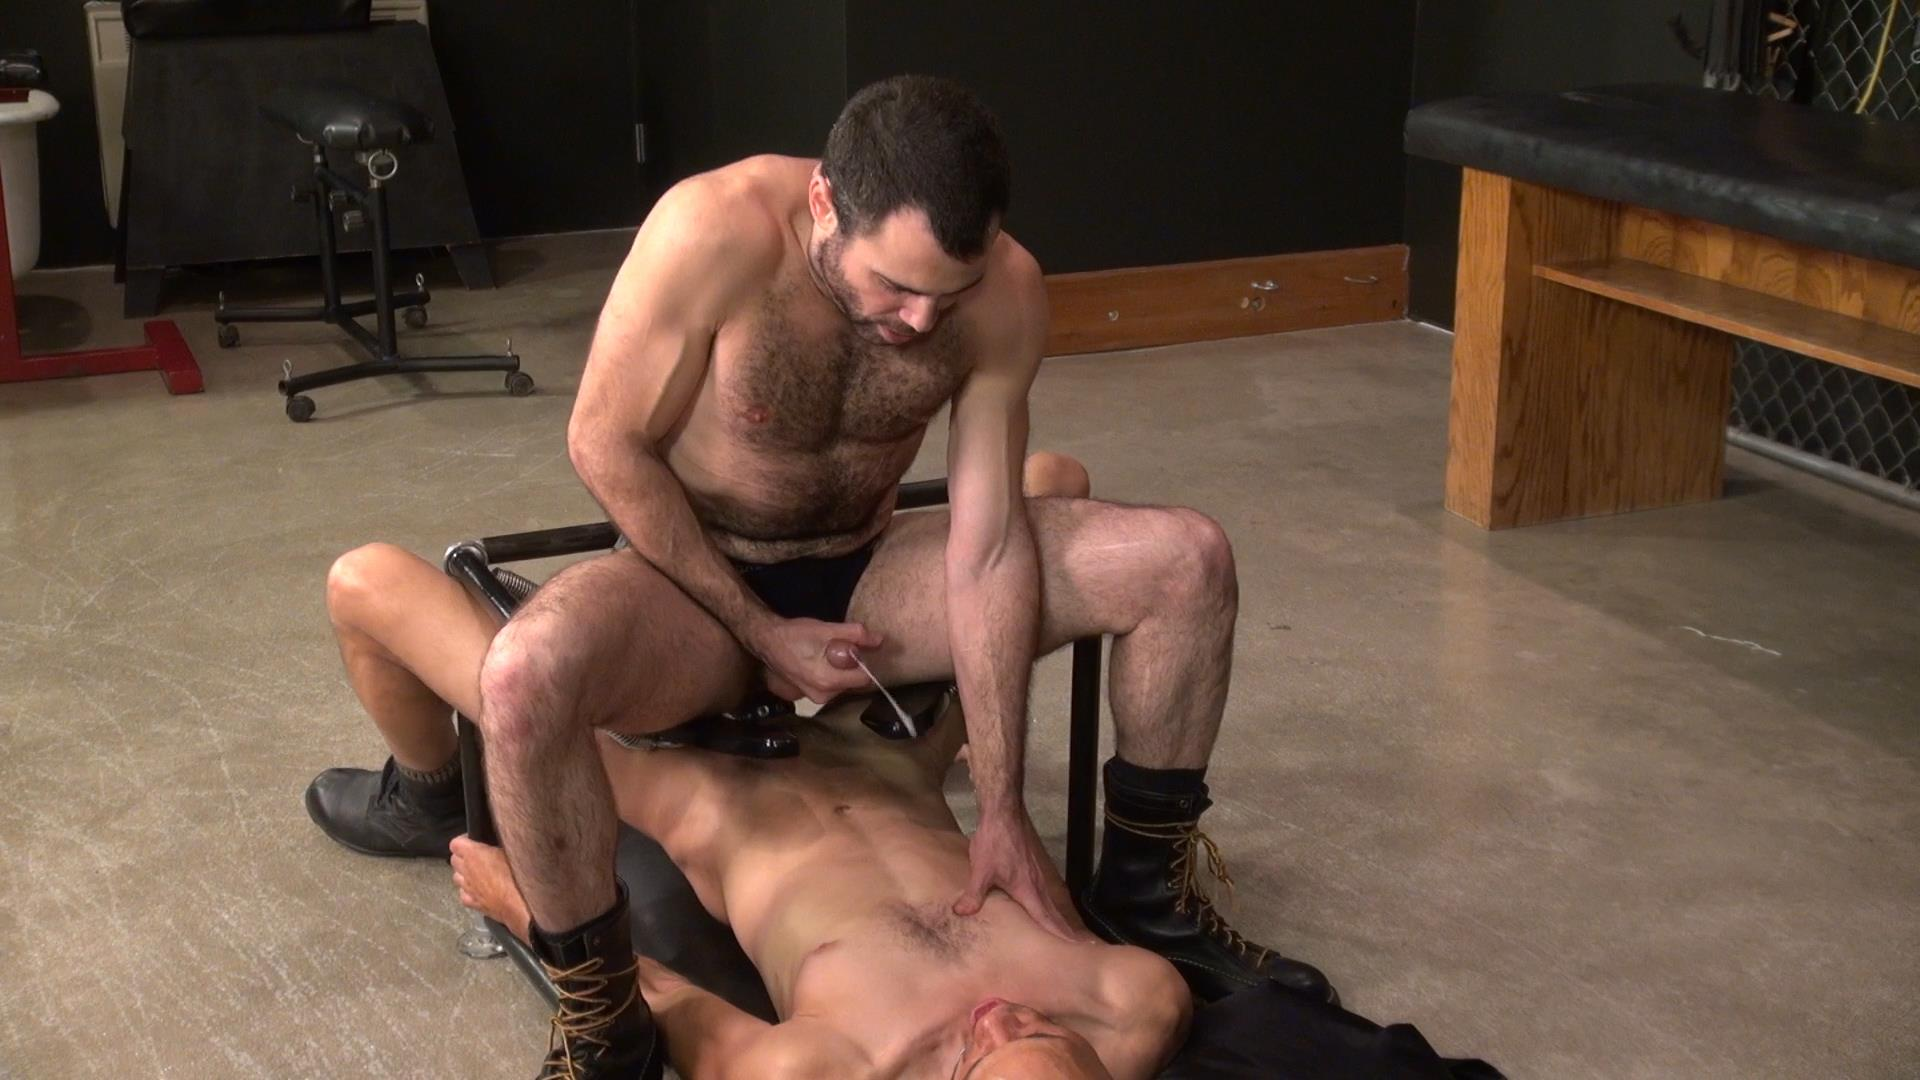 Raw and Rough Dusty Williams and Seth Patrick Barebacking A Stranger at A Sex Club Hairy Amateur Gay Porn 04 Barebacking A Hairy Guy At A Gay Sex Club